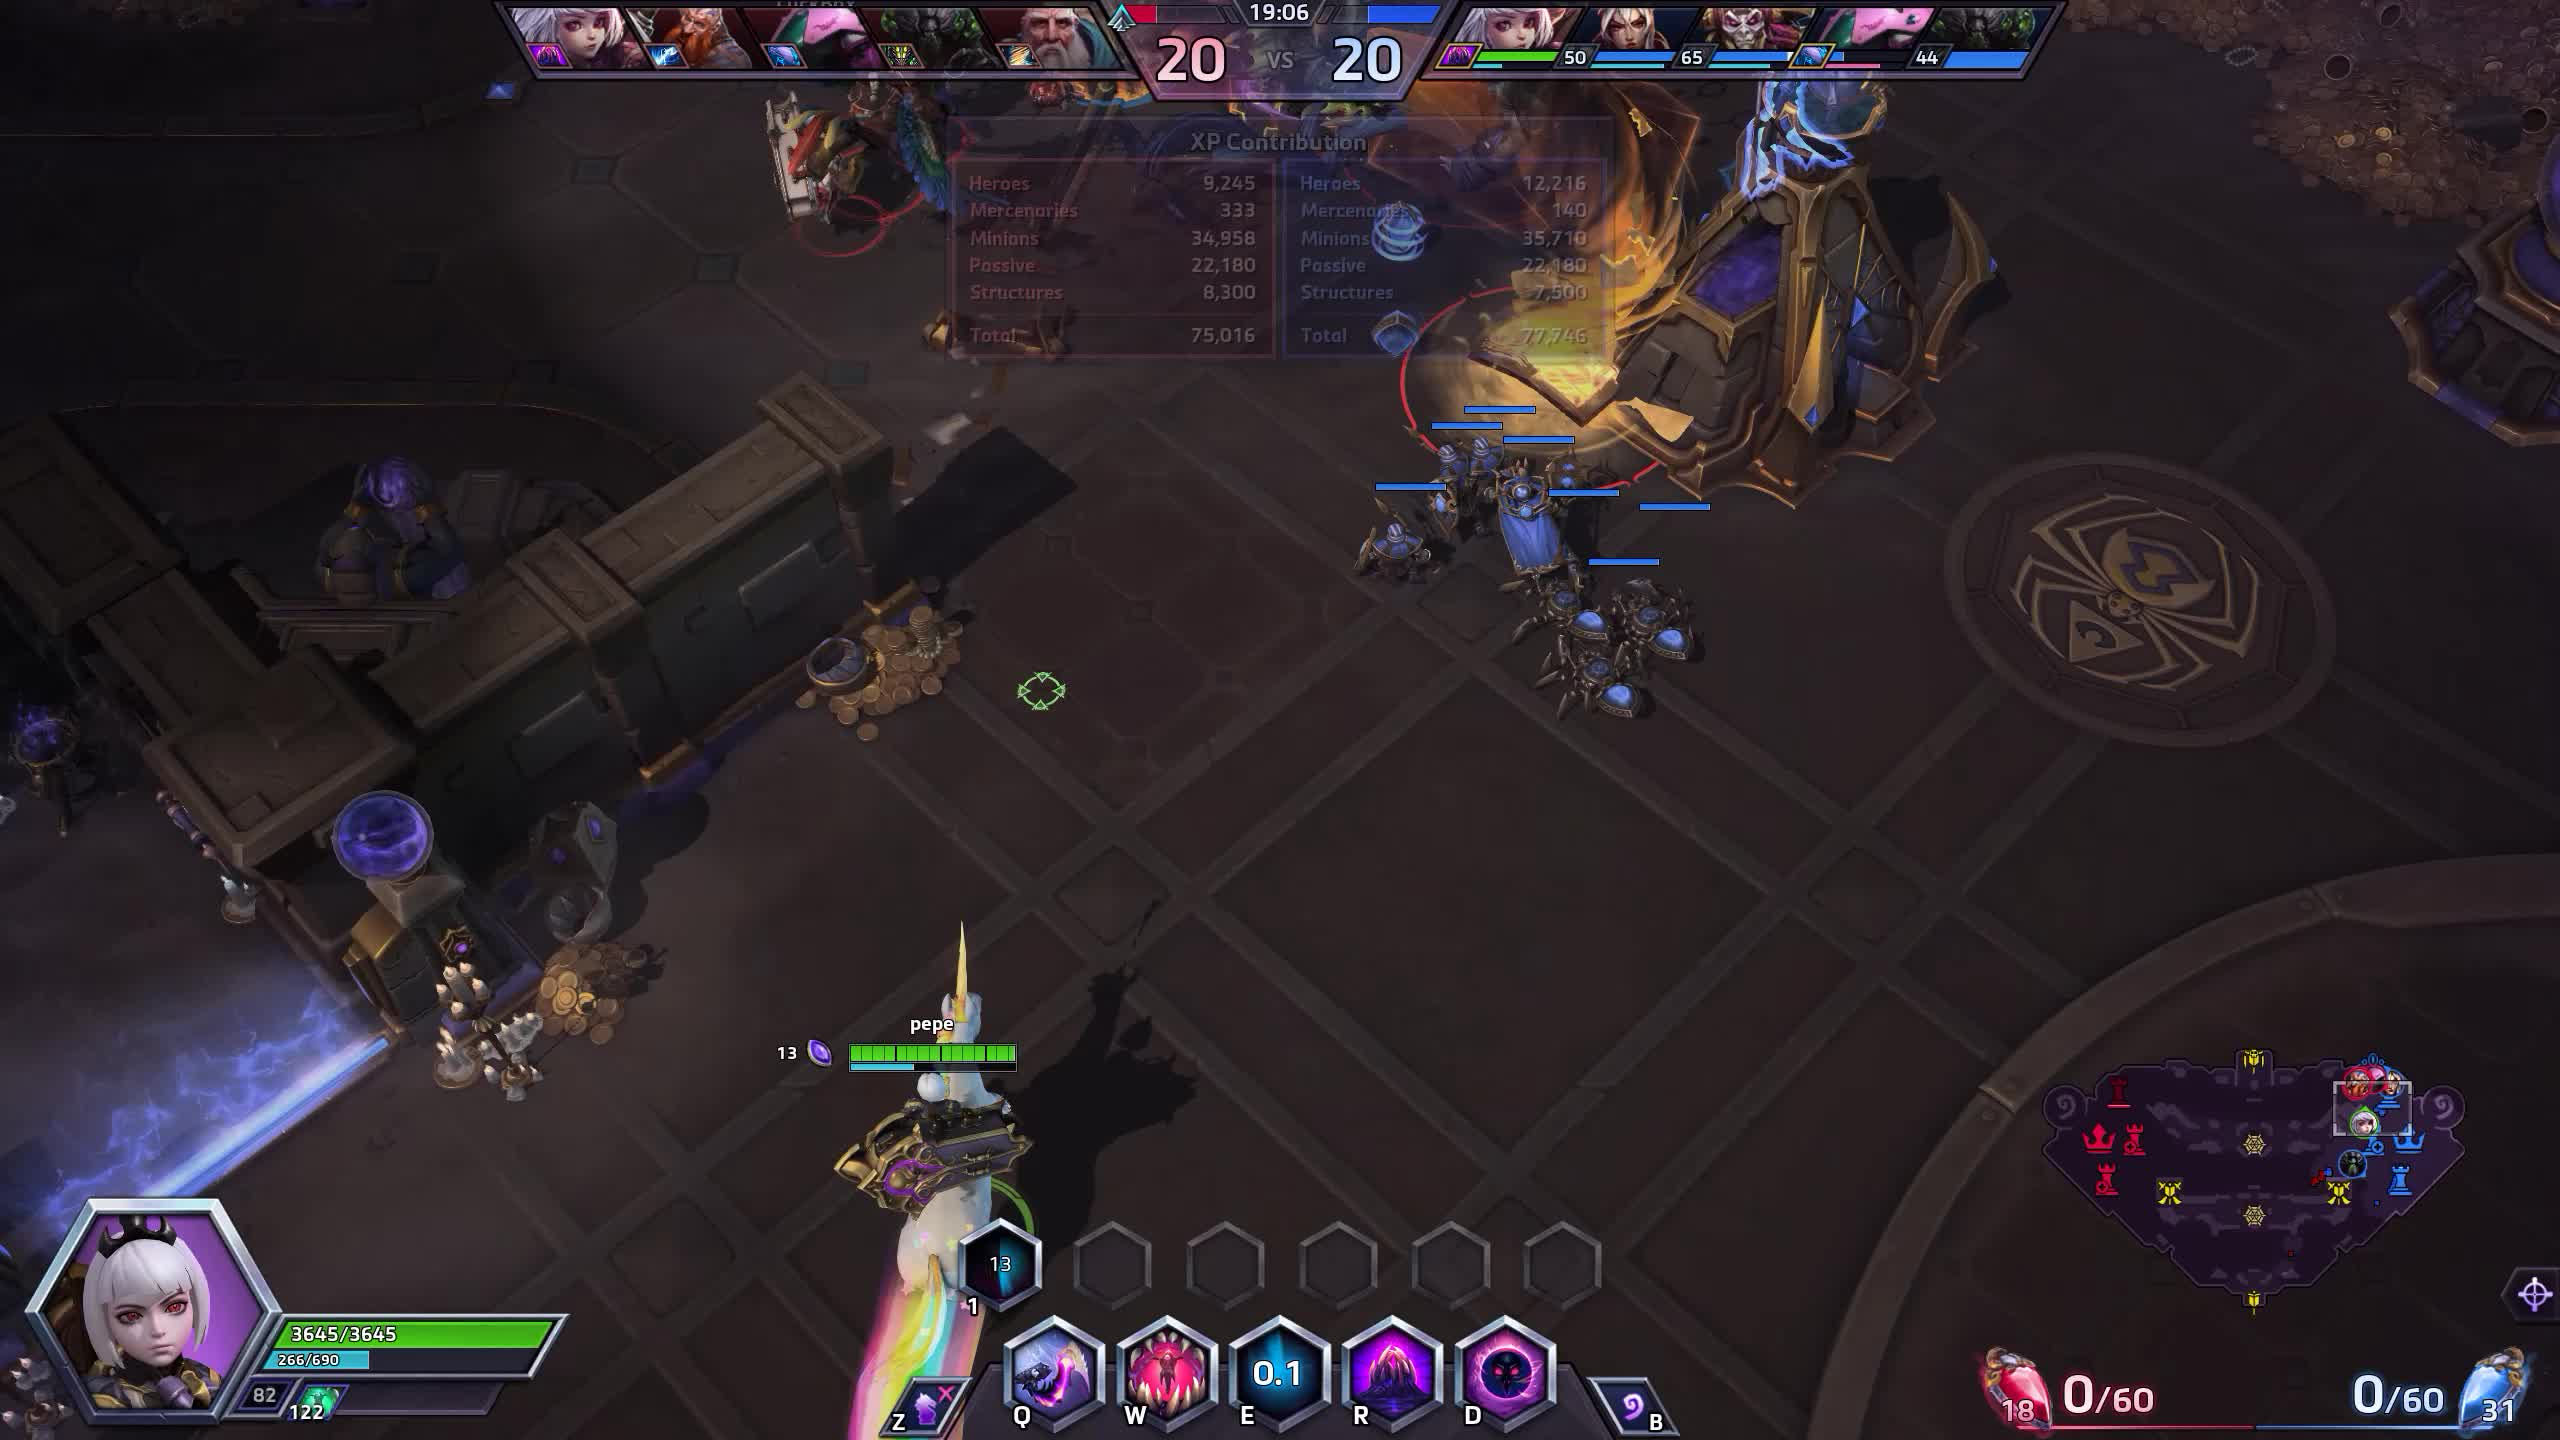 heroesofthestorm, Heroes of the Storm 2018.11.13 - 23.38.15.09.DVR Trim GIFs